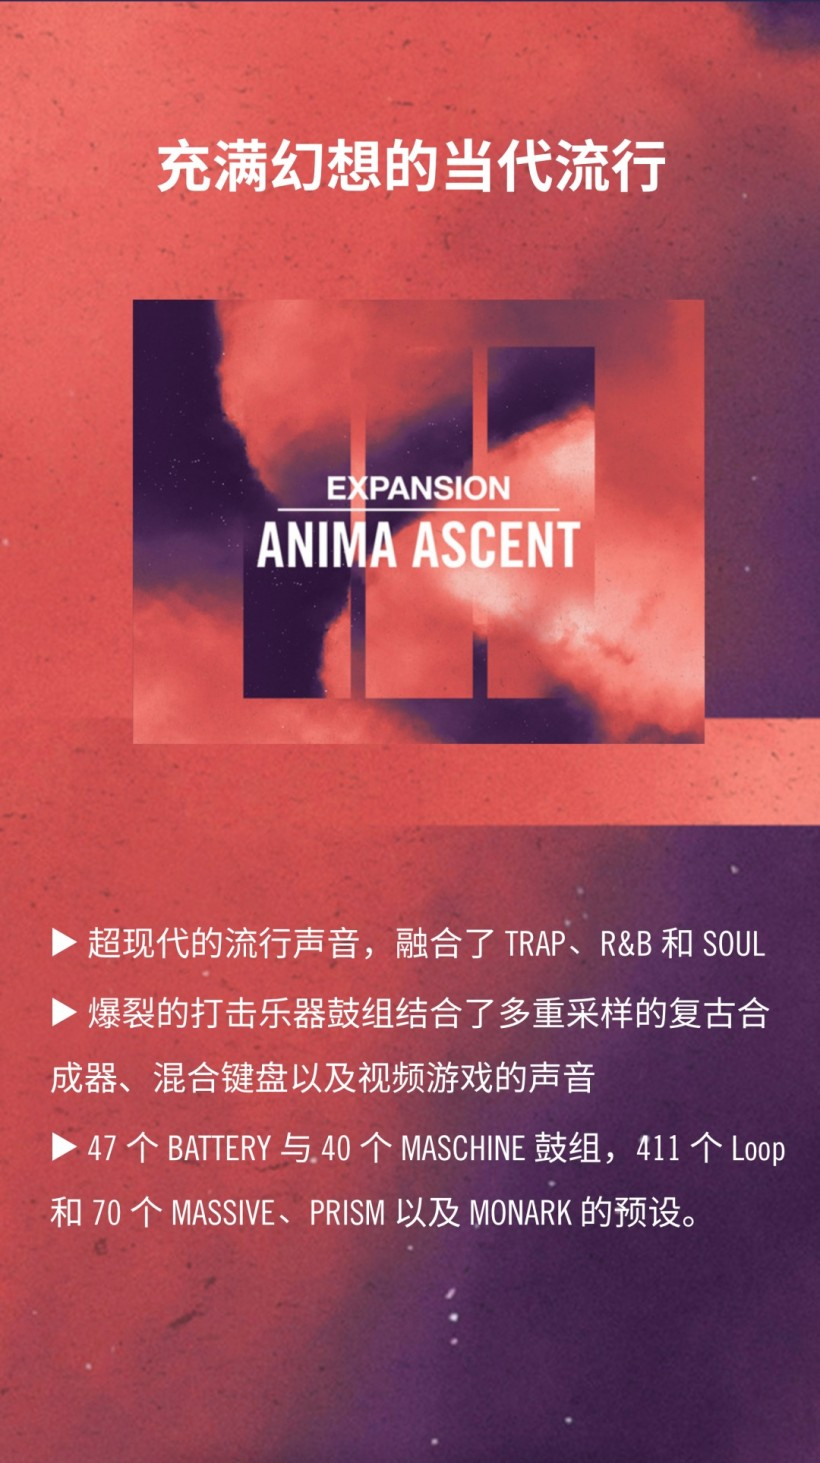 NI 发布 ANIMA ASCENT 声音拓展包,充满幻想的当代流行